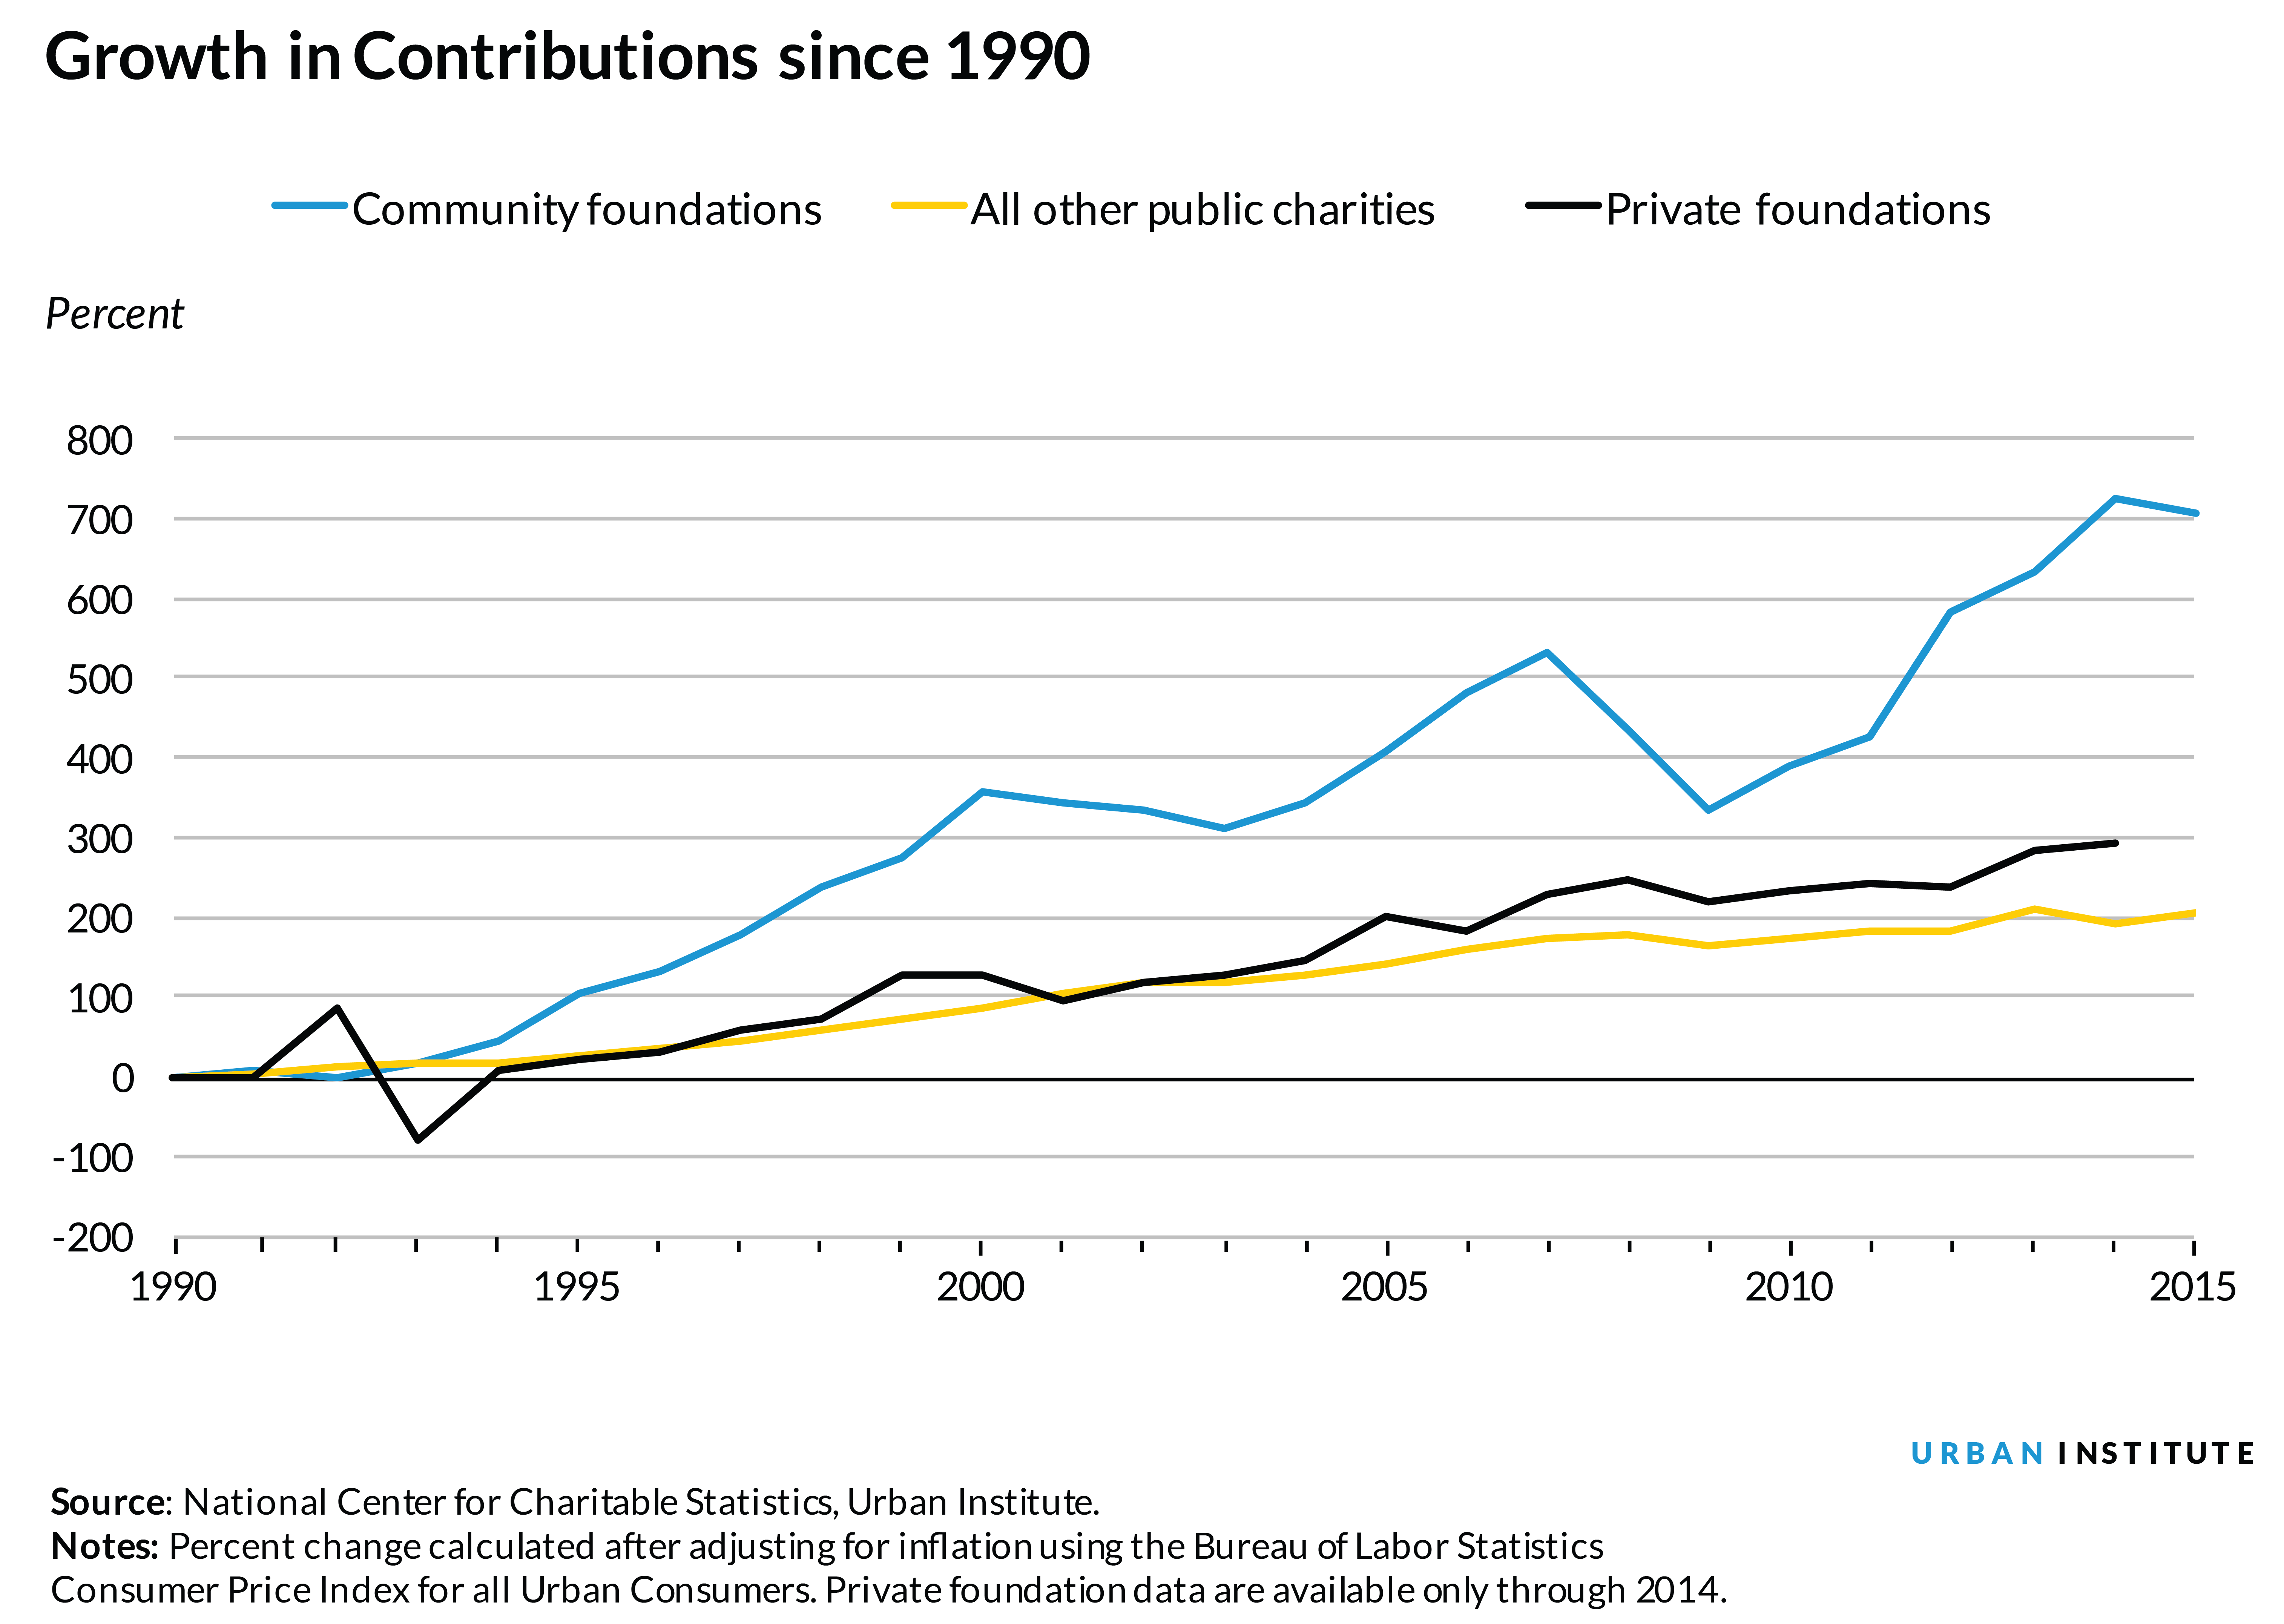 Growth in contributions to foundations since 1990